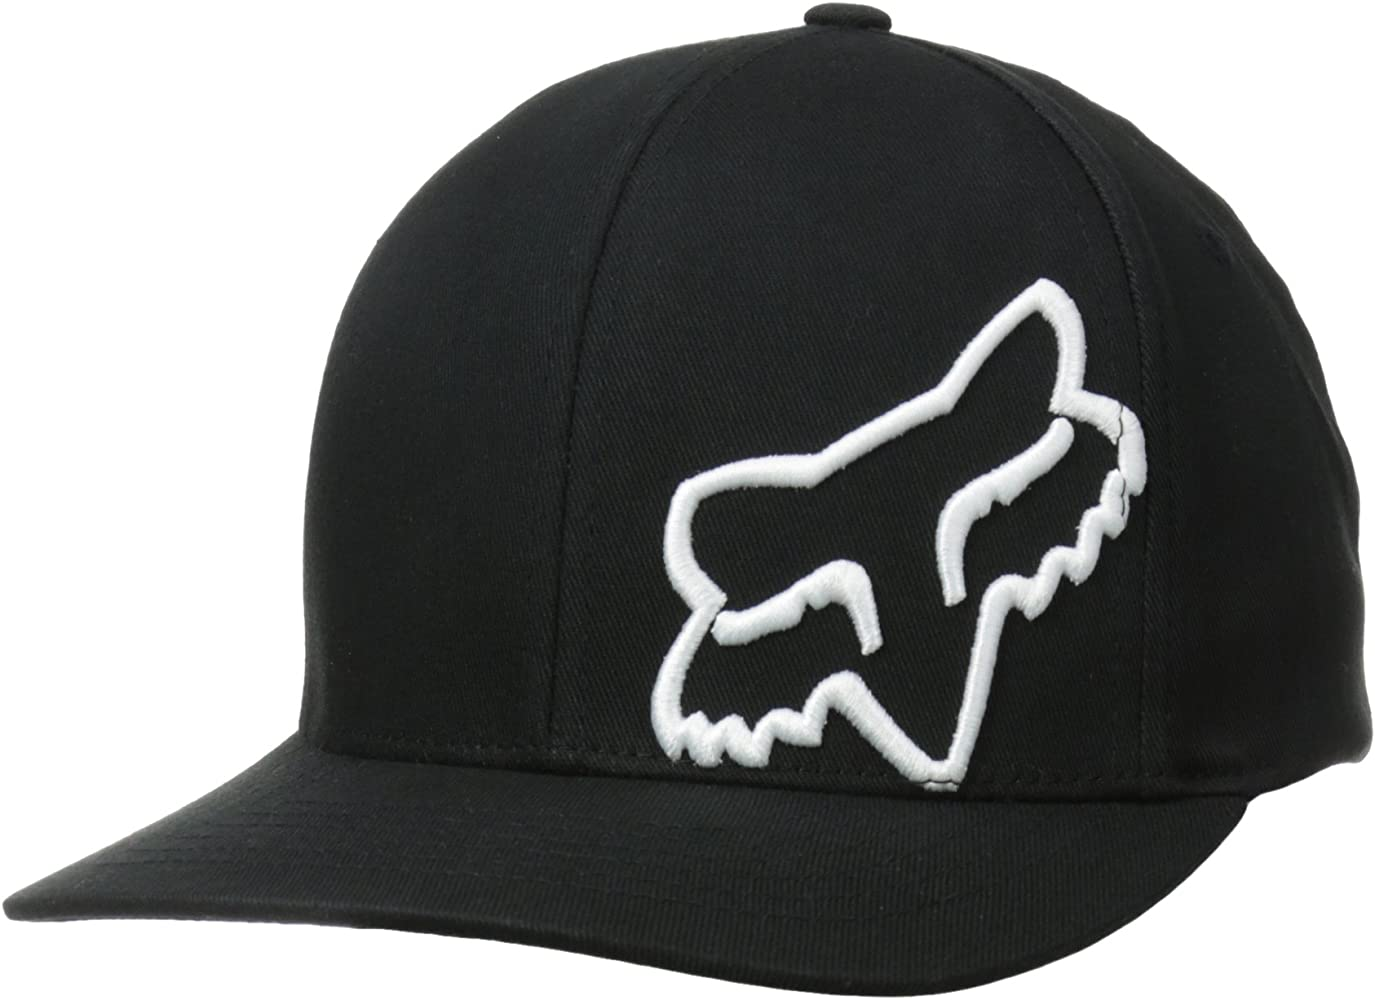 Flex 45 Flexfit Hat Black/White: Amazon.es: Coche y moto